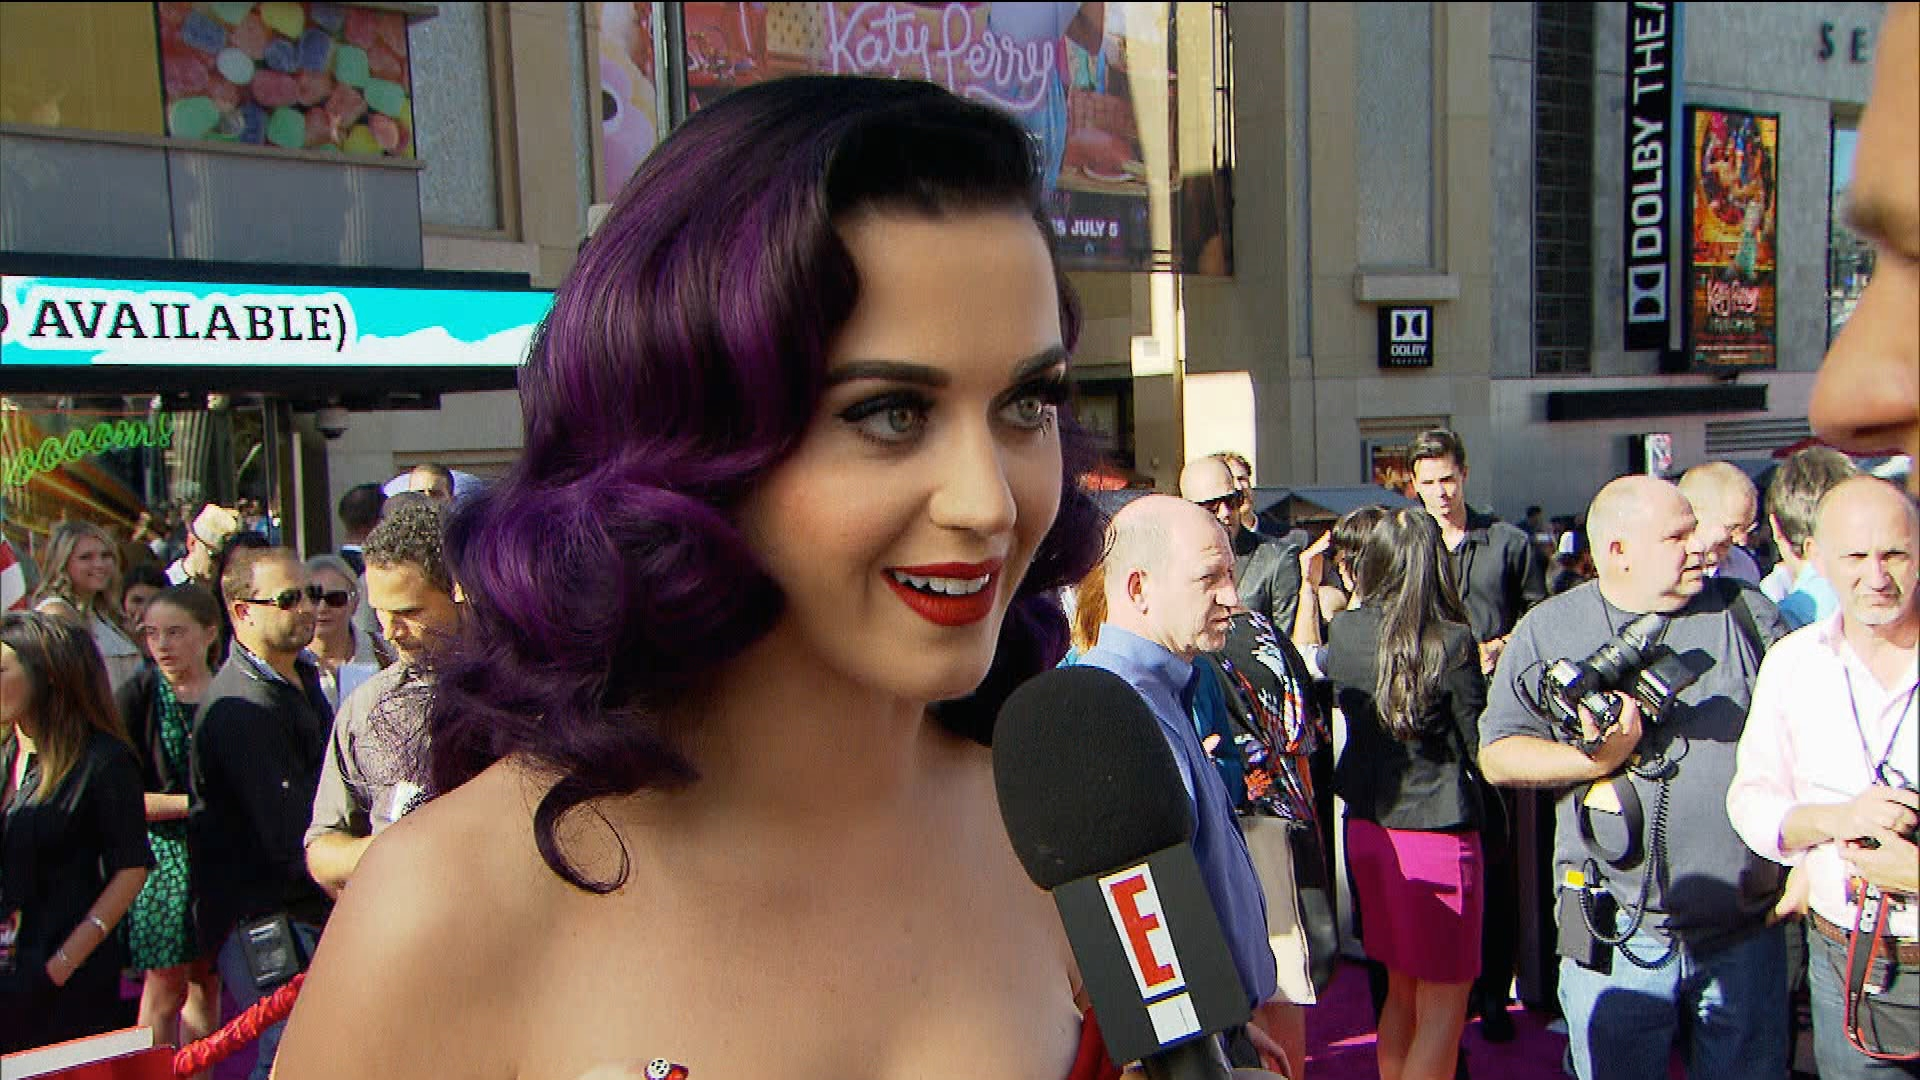 Do You Know Katy Perry's Real Name?